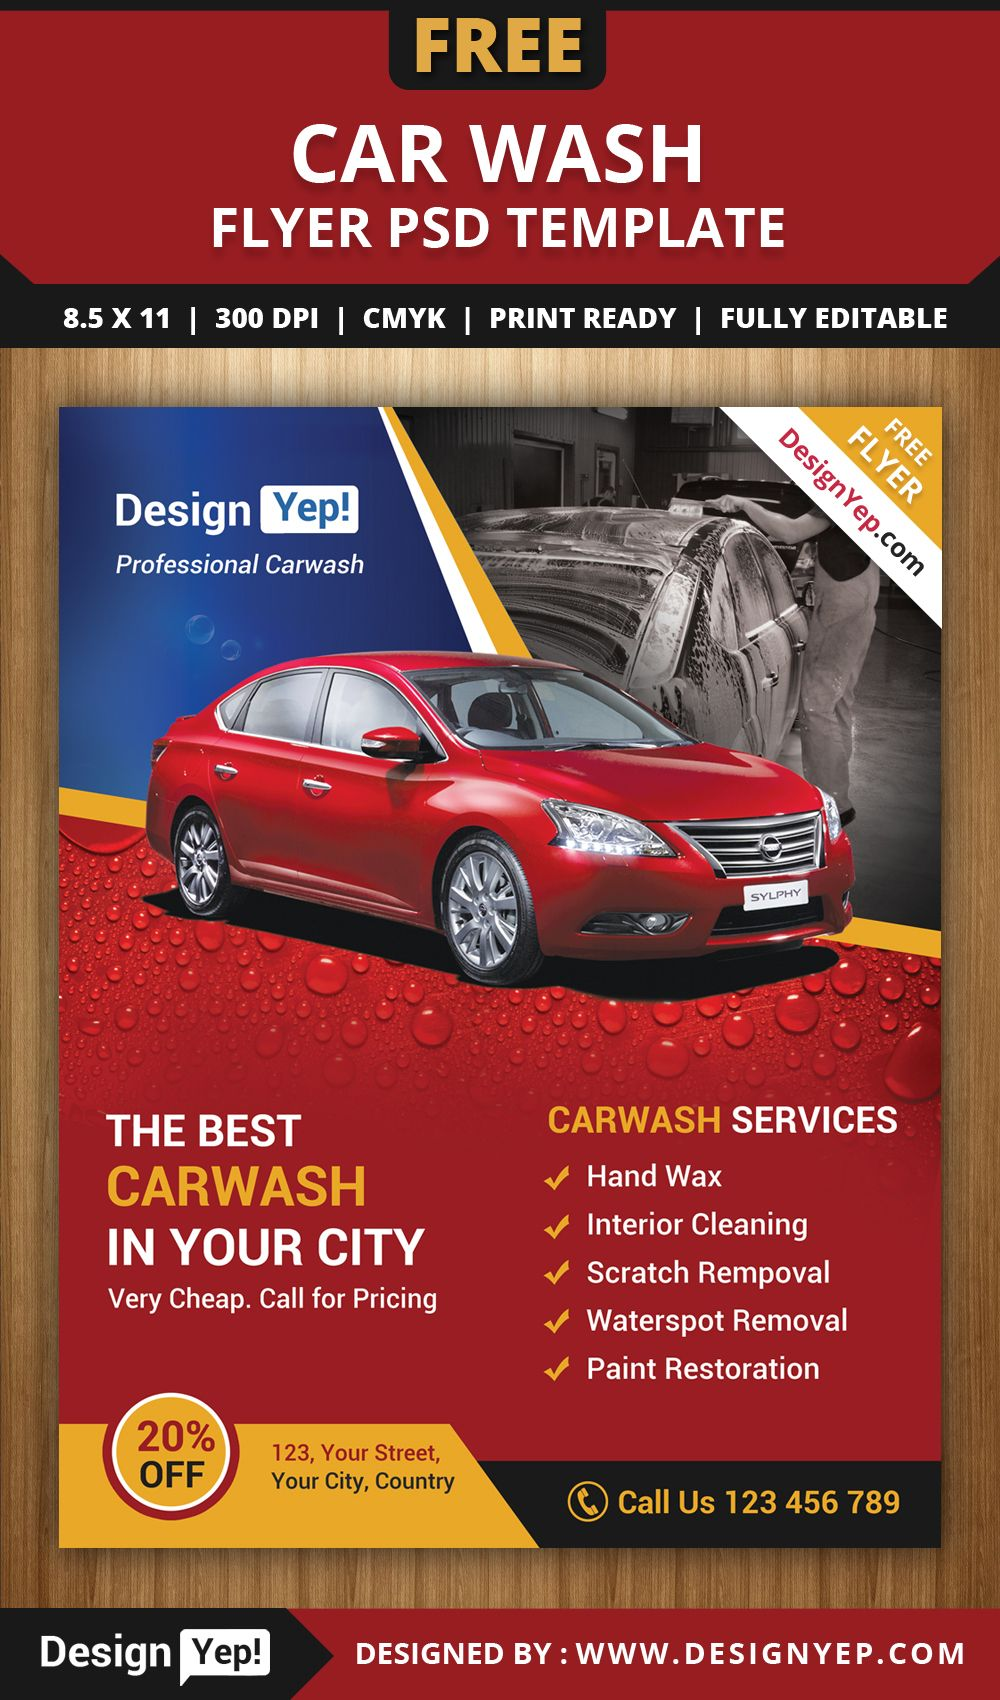 Free Car Wash Flyer Psd Template 3232 Designyep Free Flyers Car